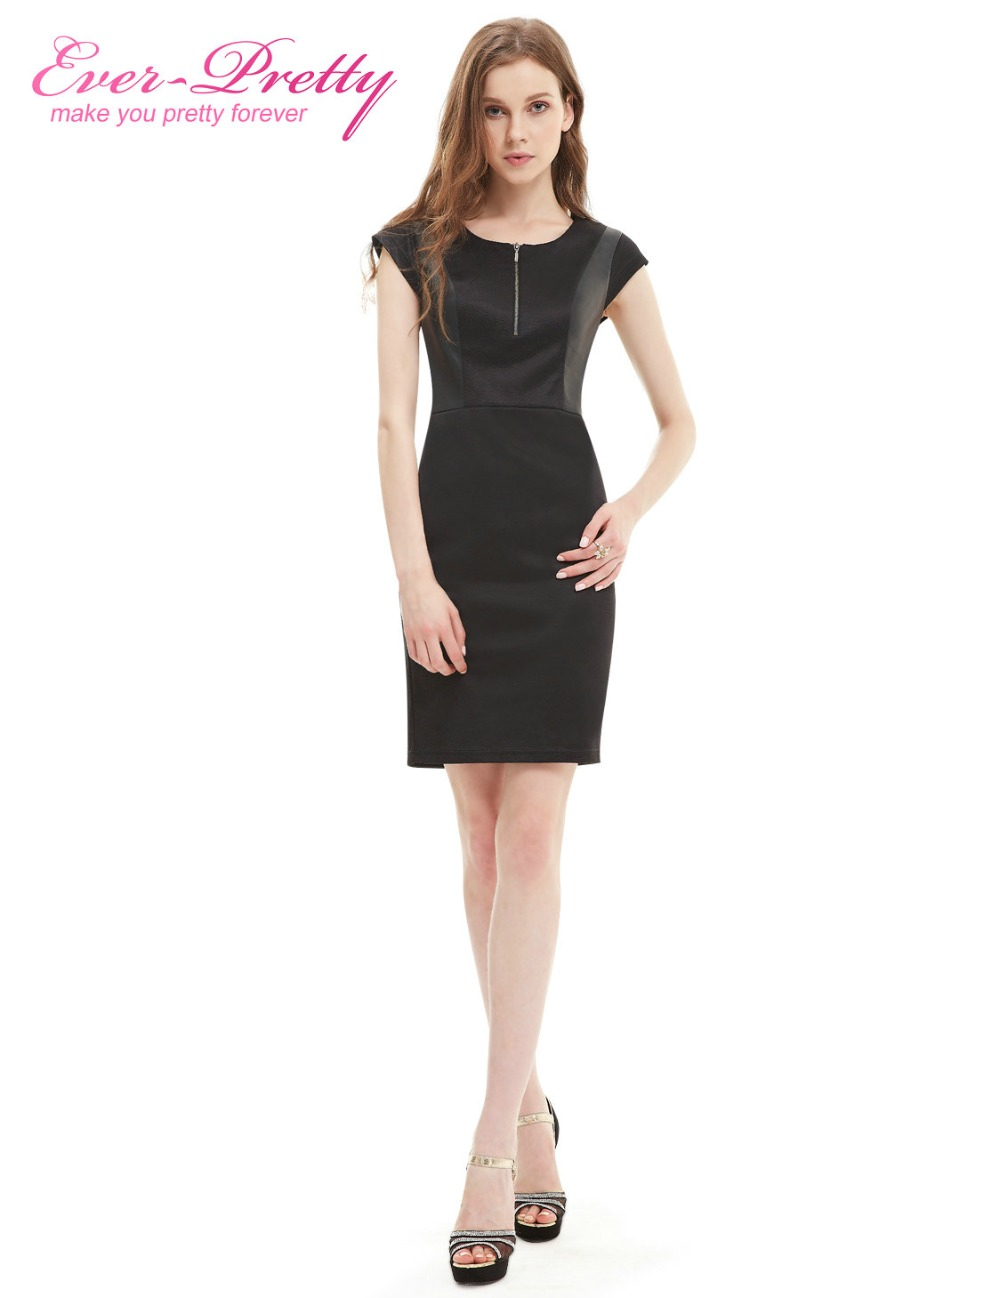 [Clearance Sale] Party   Dress   Stylish Body-con Ever Pretty Black Sexy Stretchy Short Sleeve   Dresses   Women HE05306BK 2018